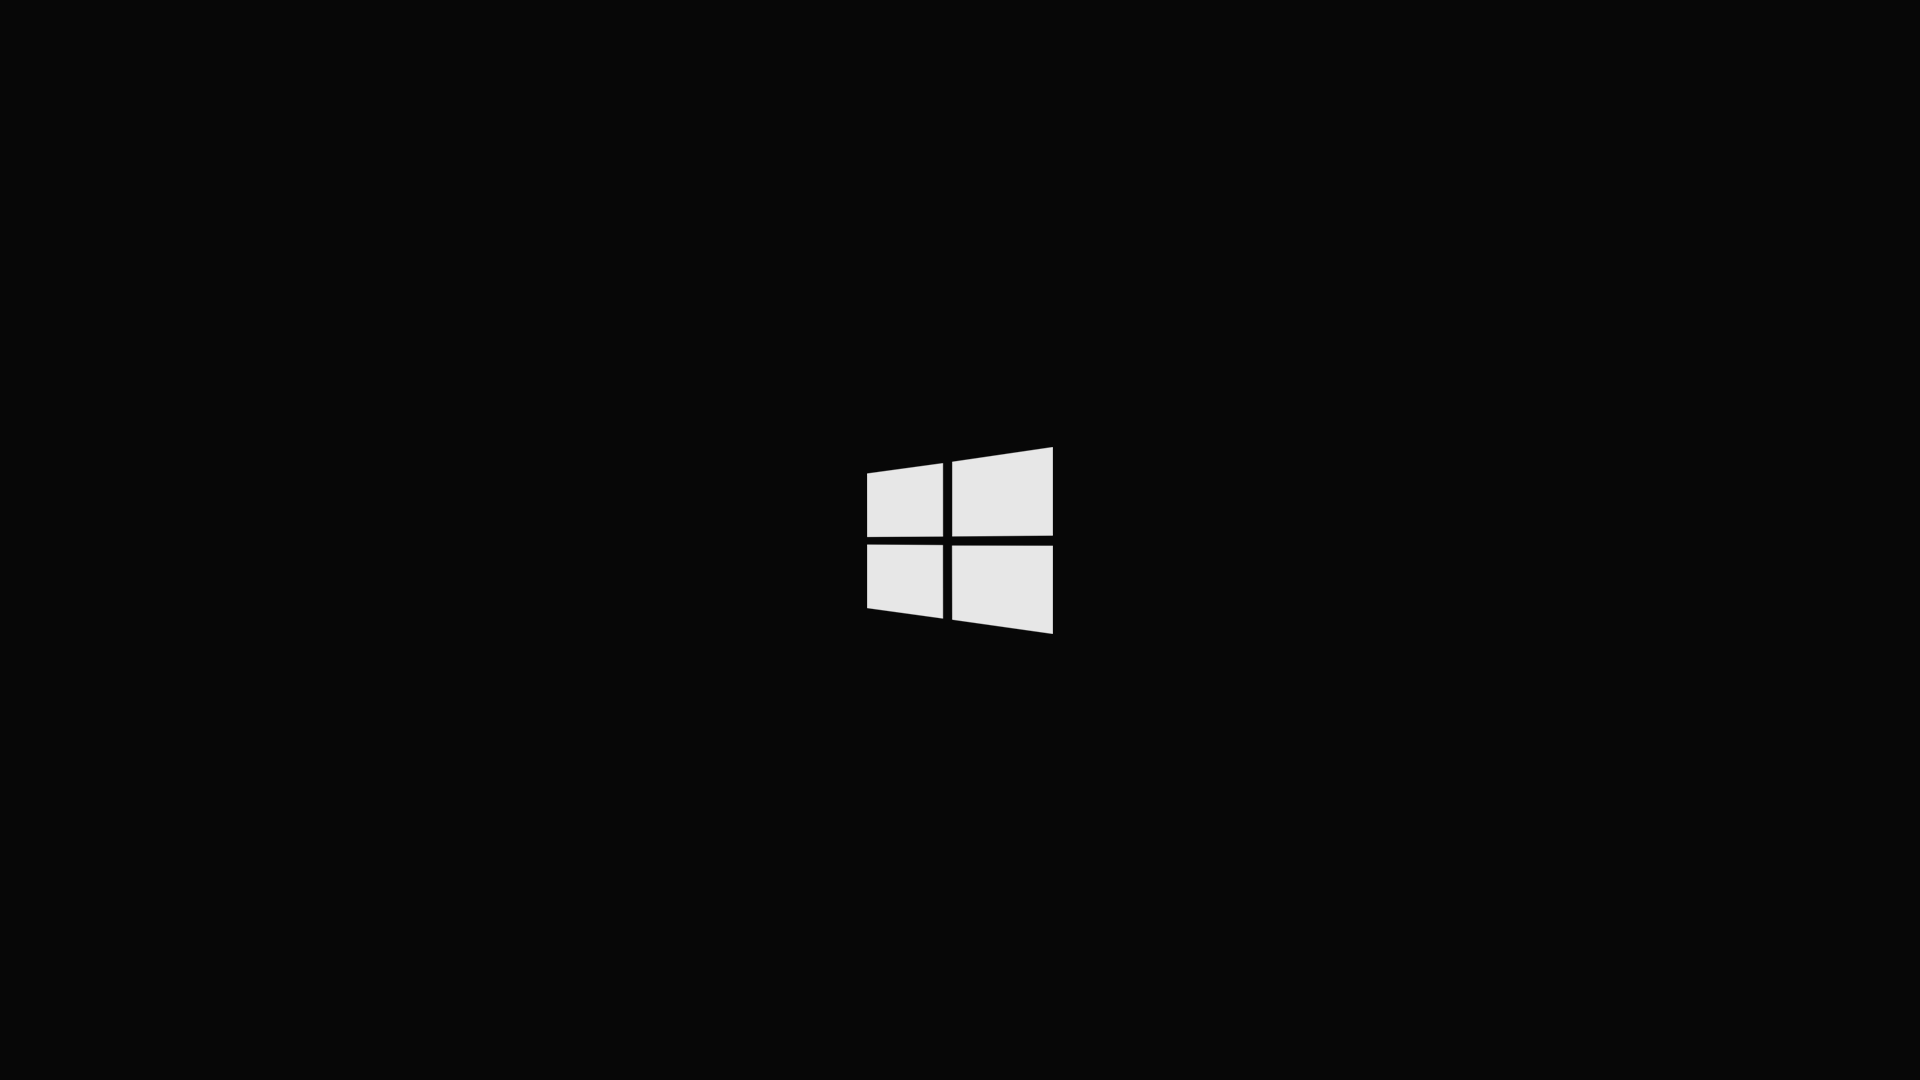 720x1280 Wallpaper Hd Black Fondos De Pantalla Windows 10 Sencillo Microsoft